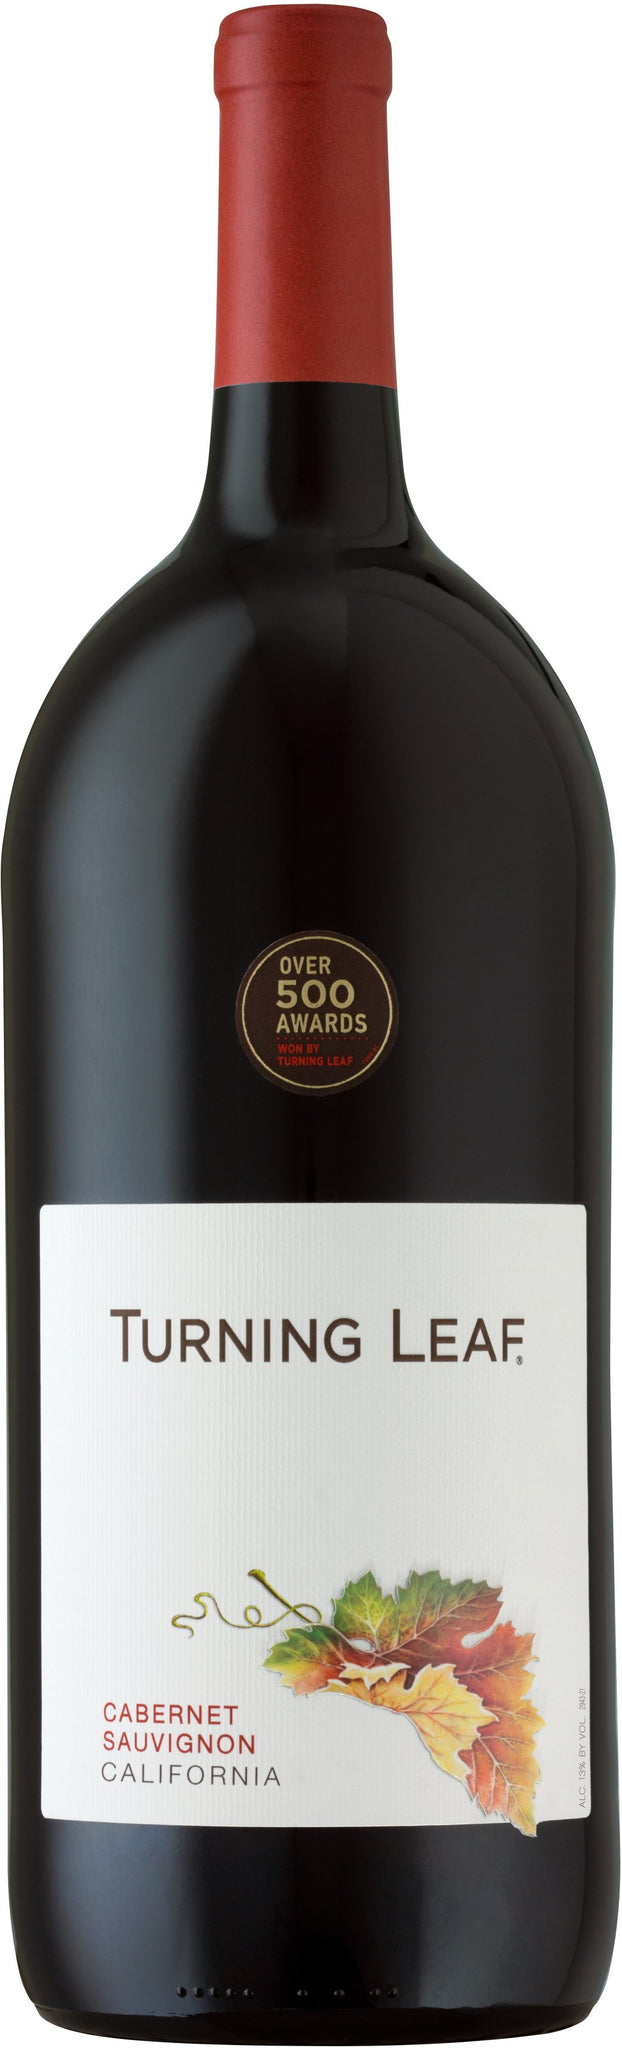 stl>Cabernet Savignon Turning Leaf - 750ml